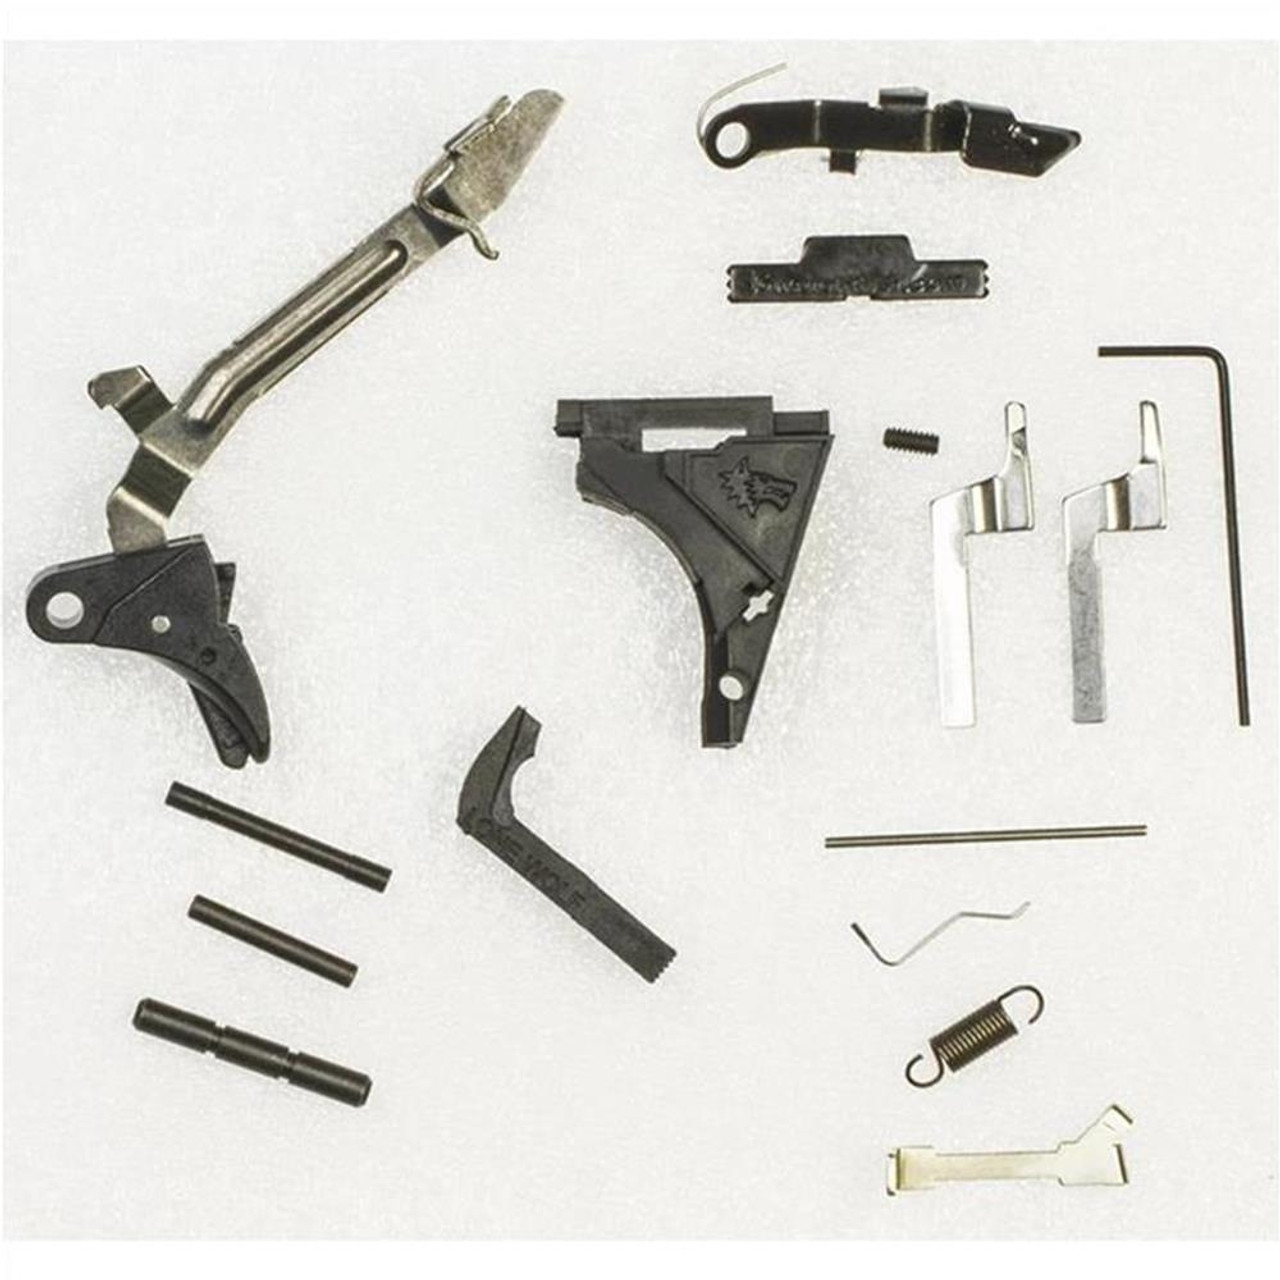 Lone Wolf Polymer80 PF940SC Sub Compact Lower Completion Kit 9mm,  40, and   357